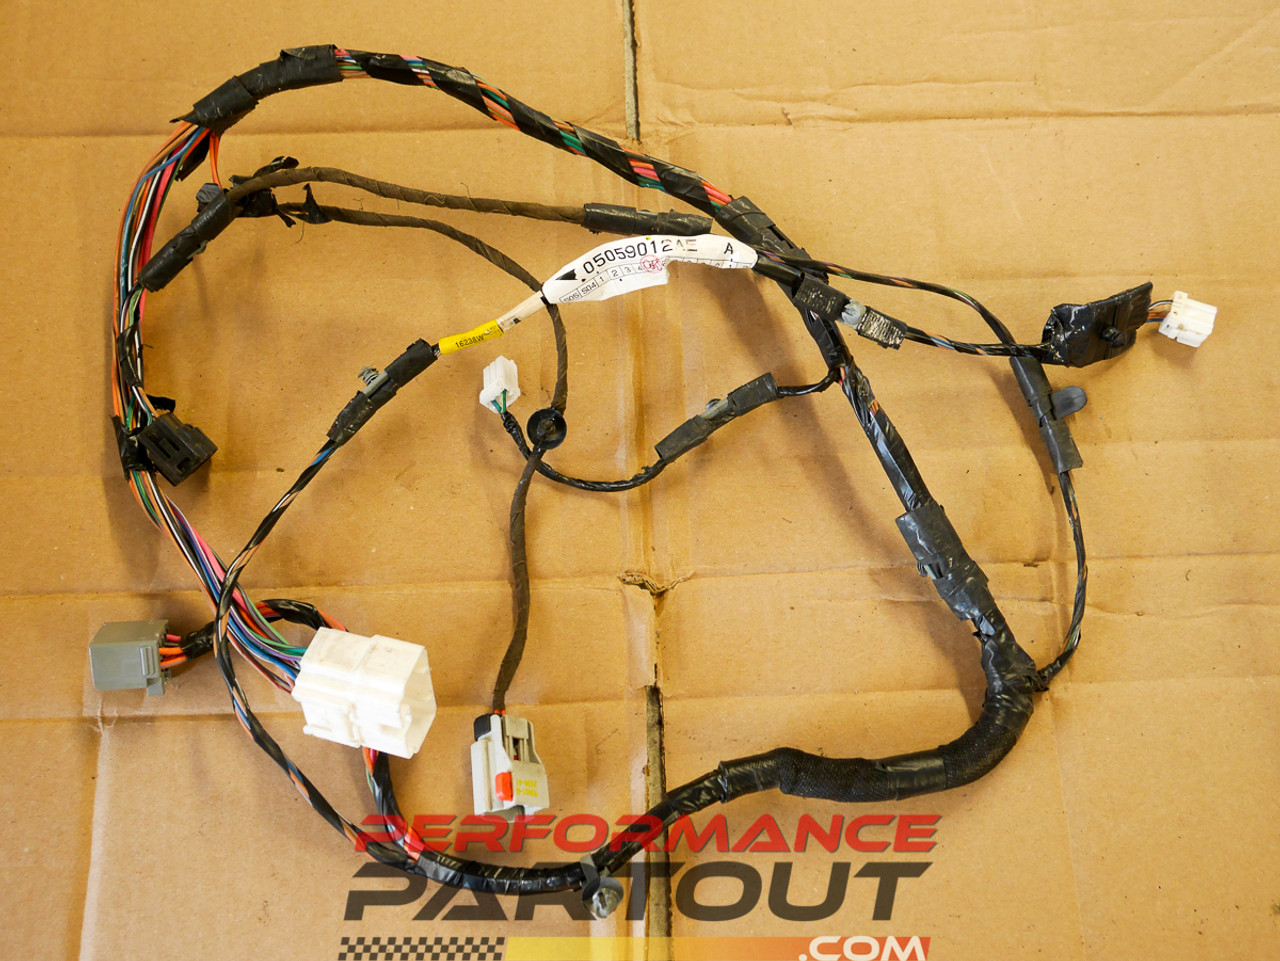 small resolution of door wiring harness passenger right front magnum charger 300 05 07 performance partout